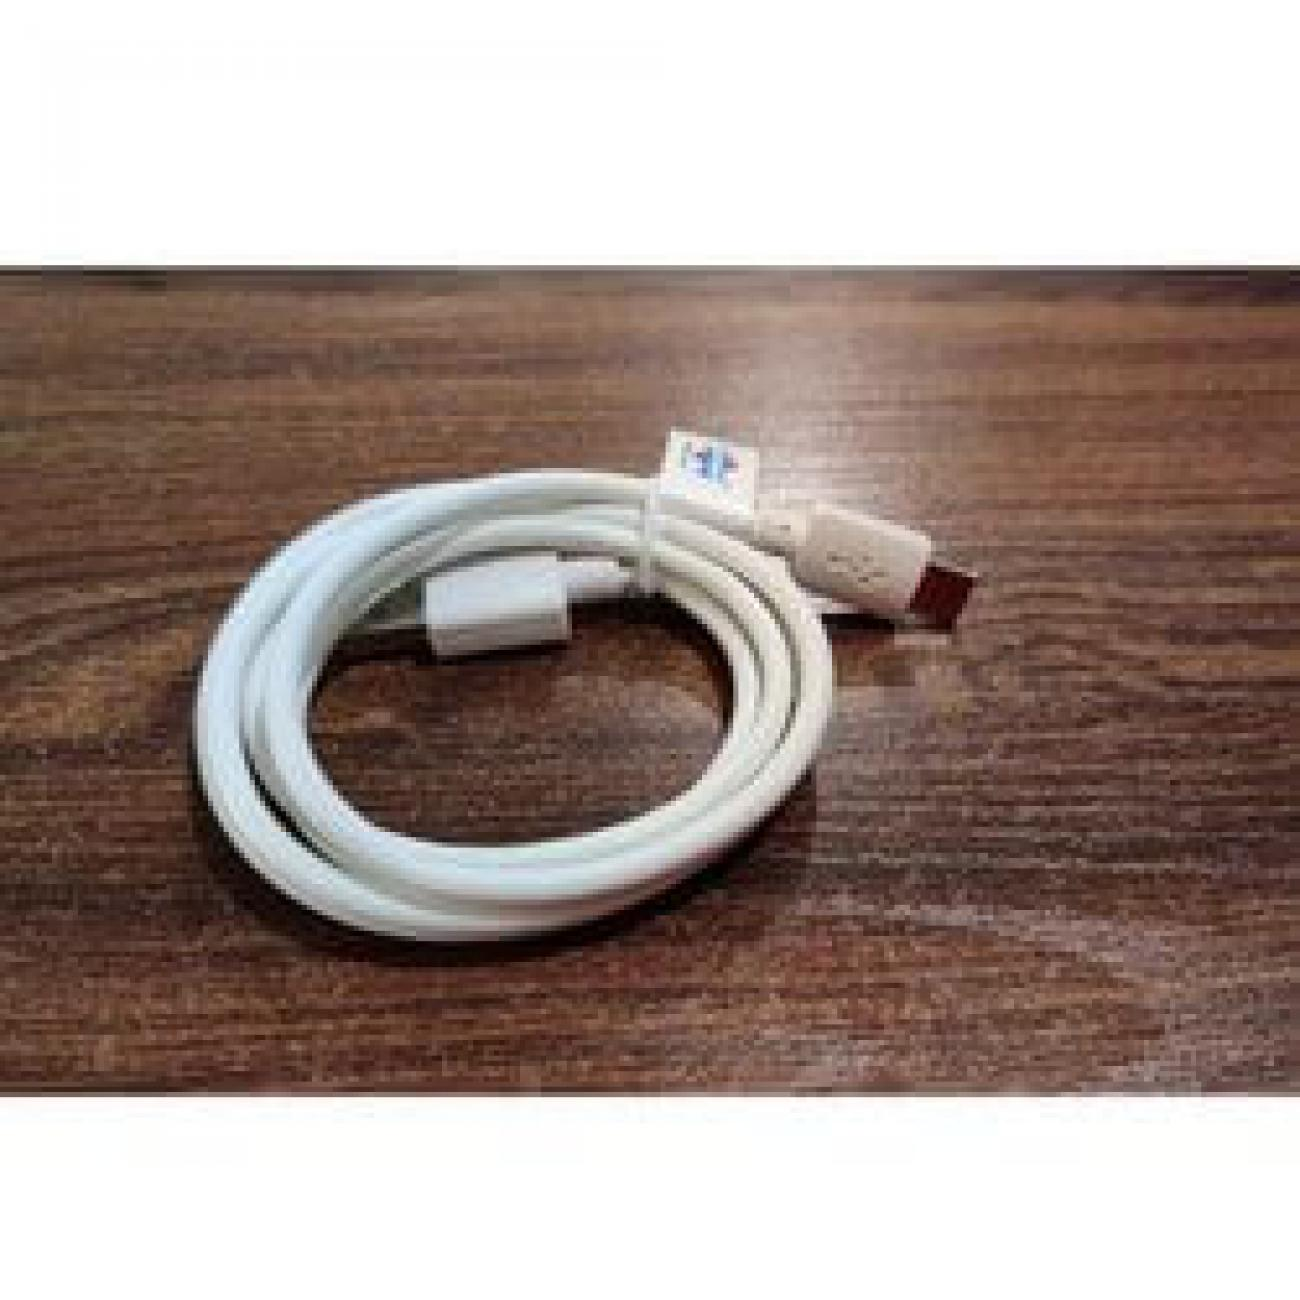 Type-C USB data cable